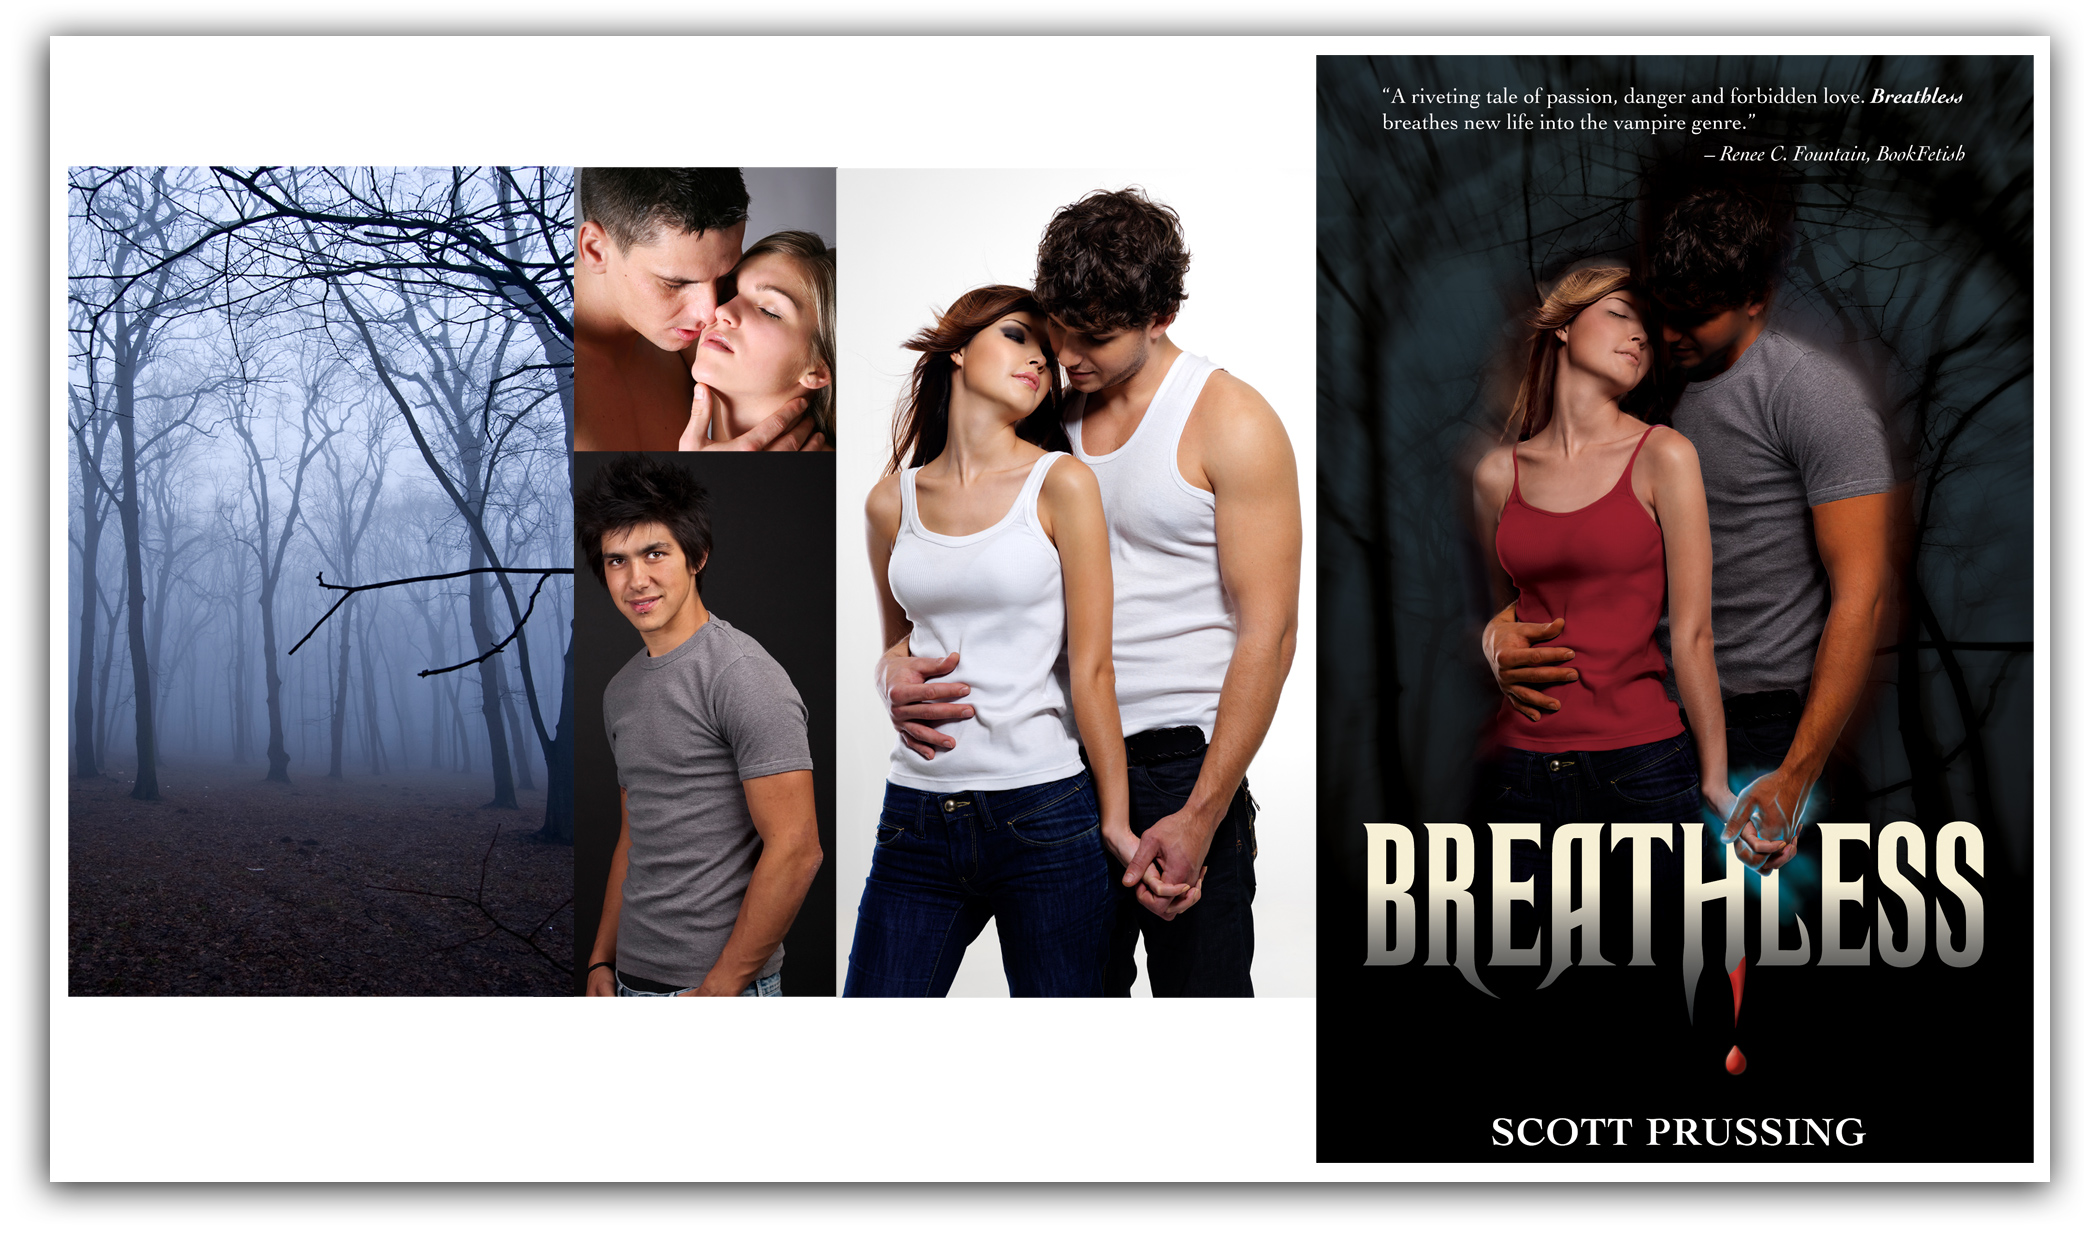 image of Breathless cover design with working images